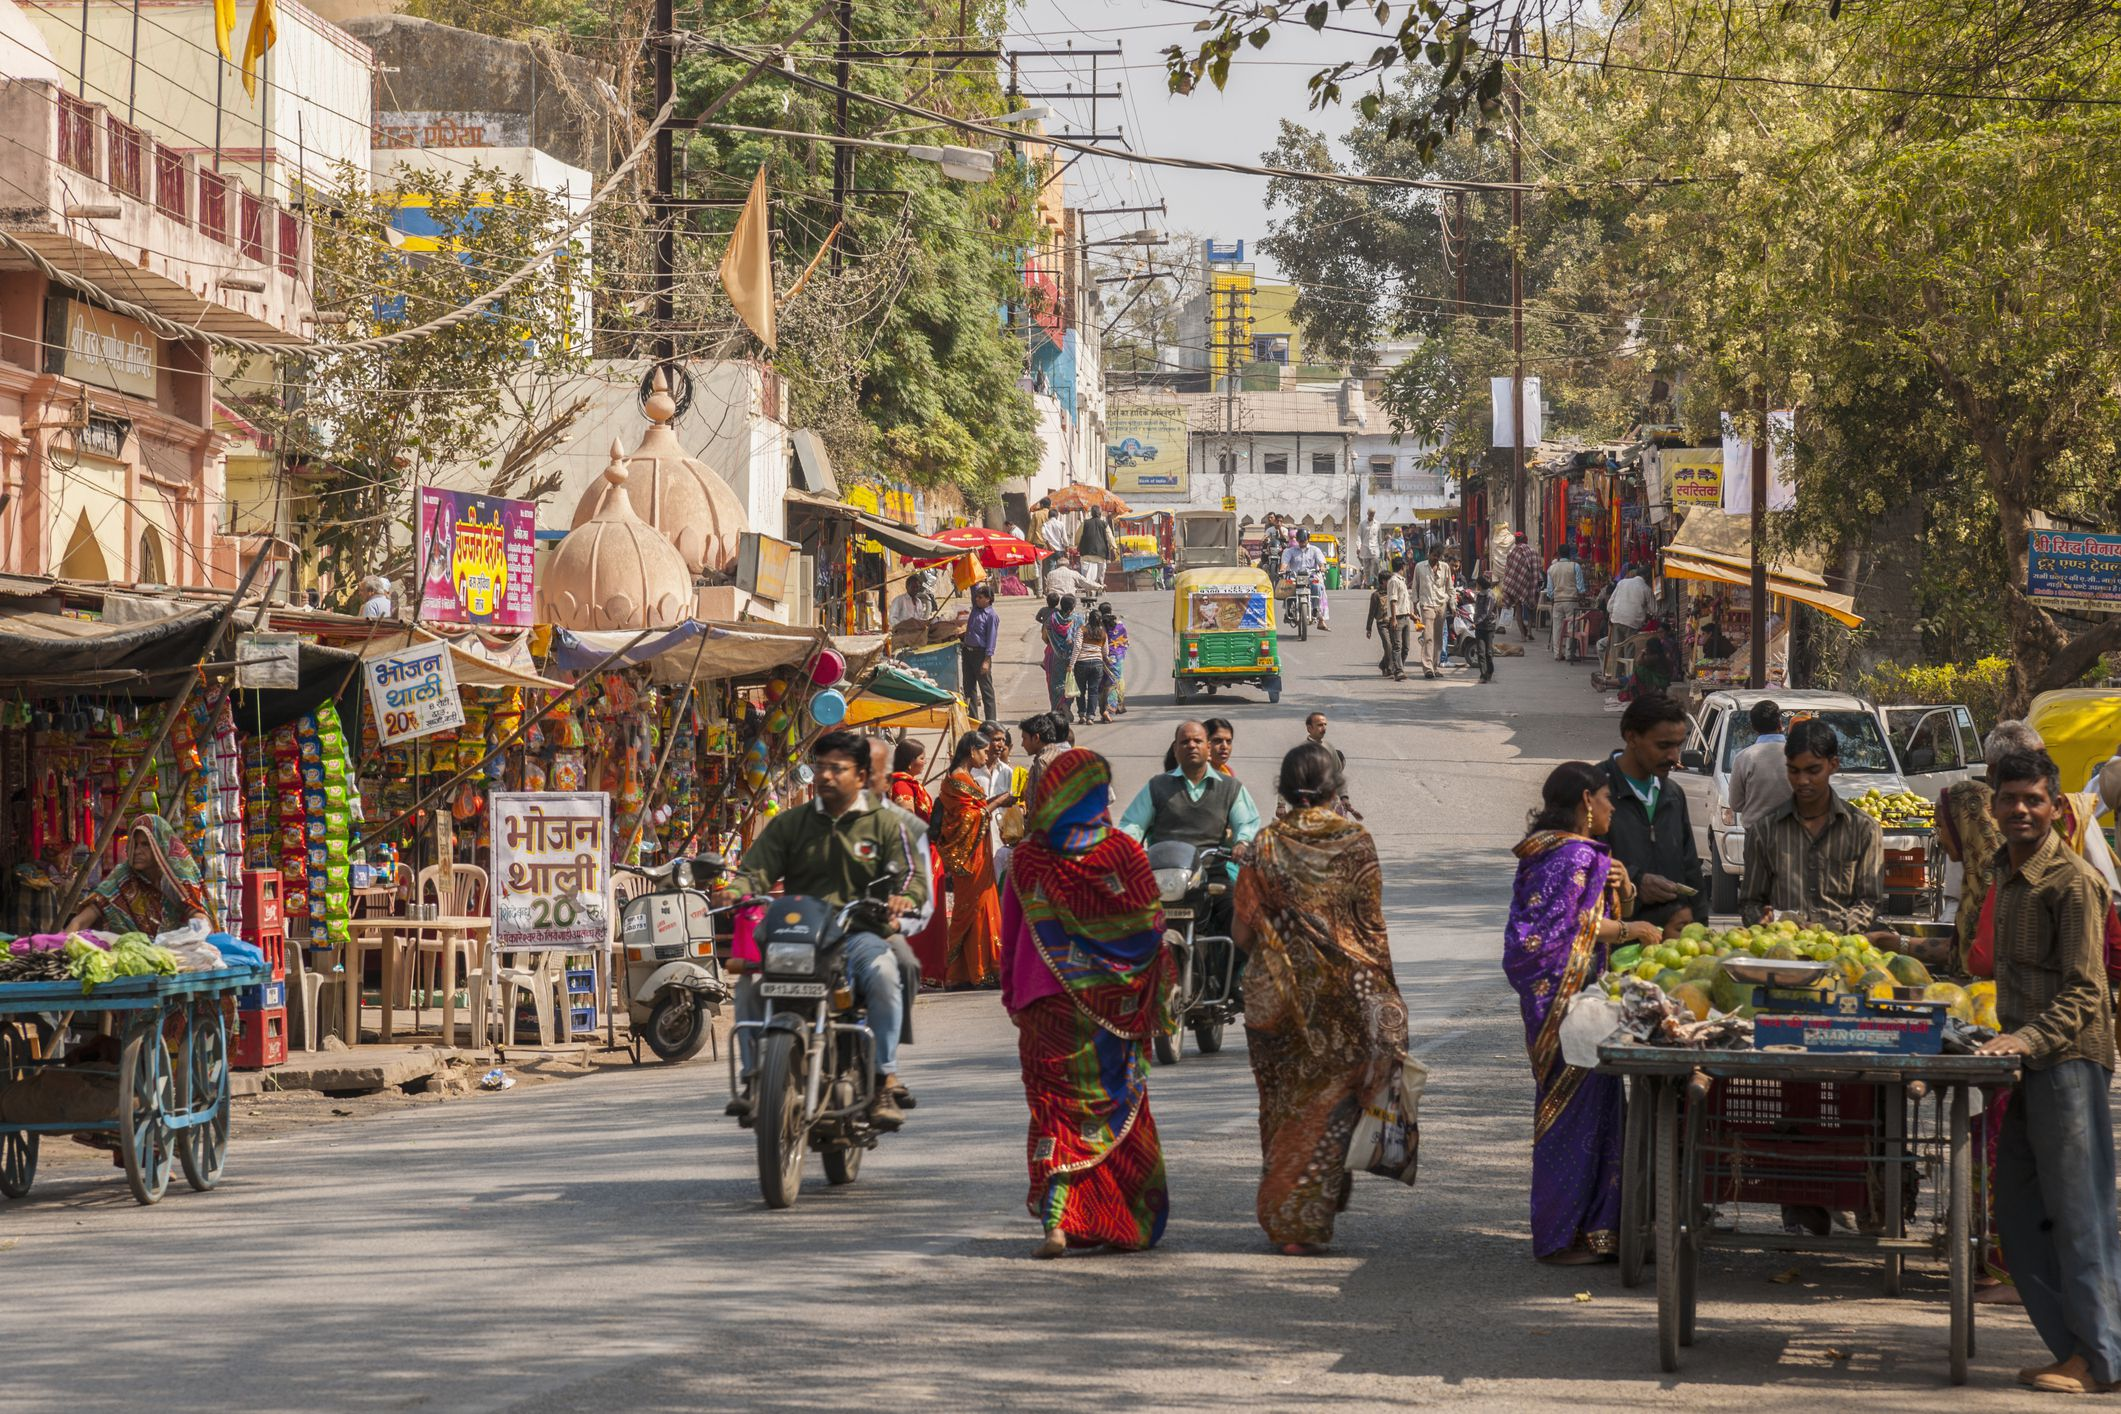 Daily life in downtown Ujjain